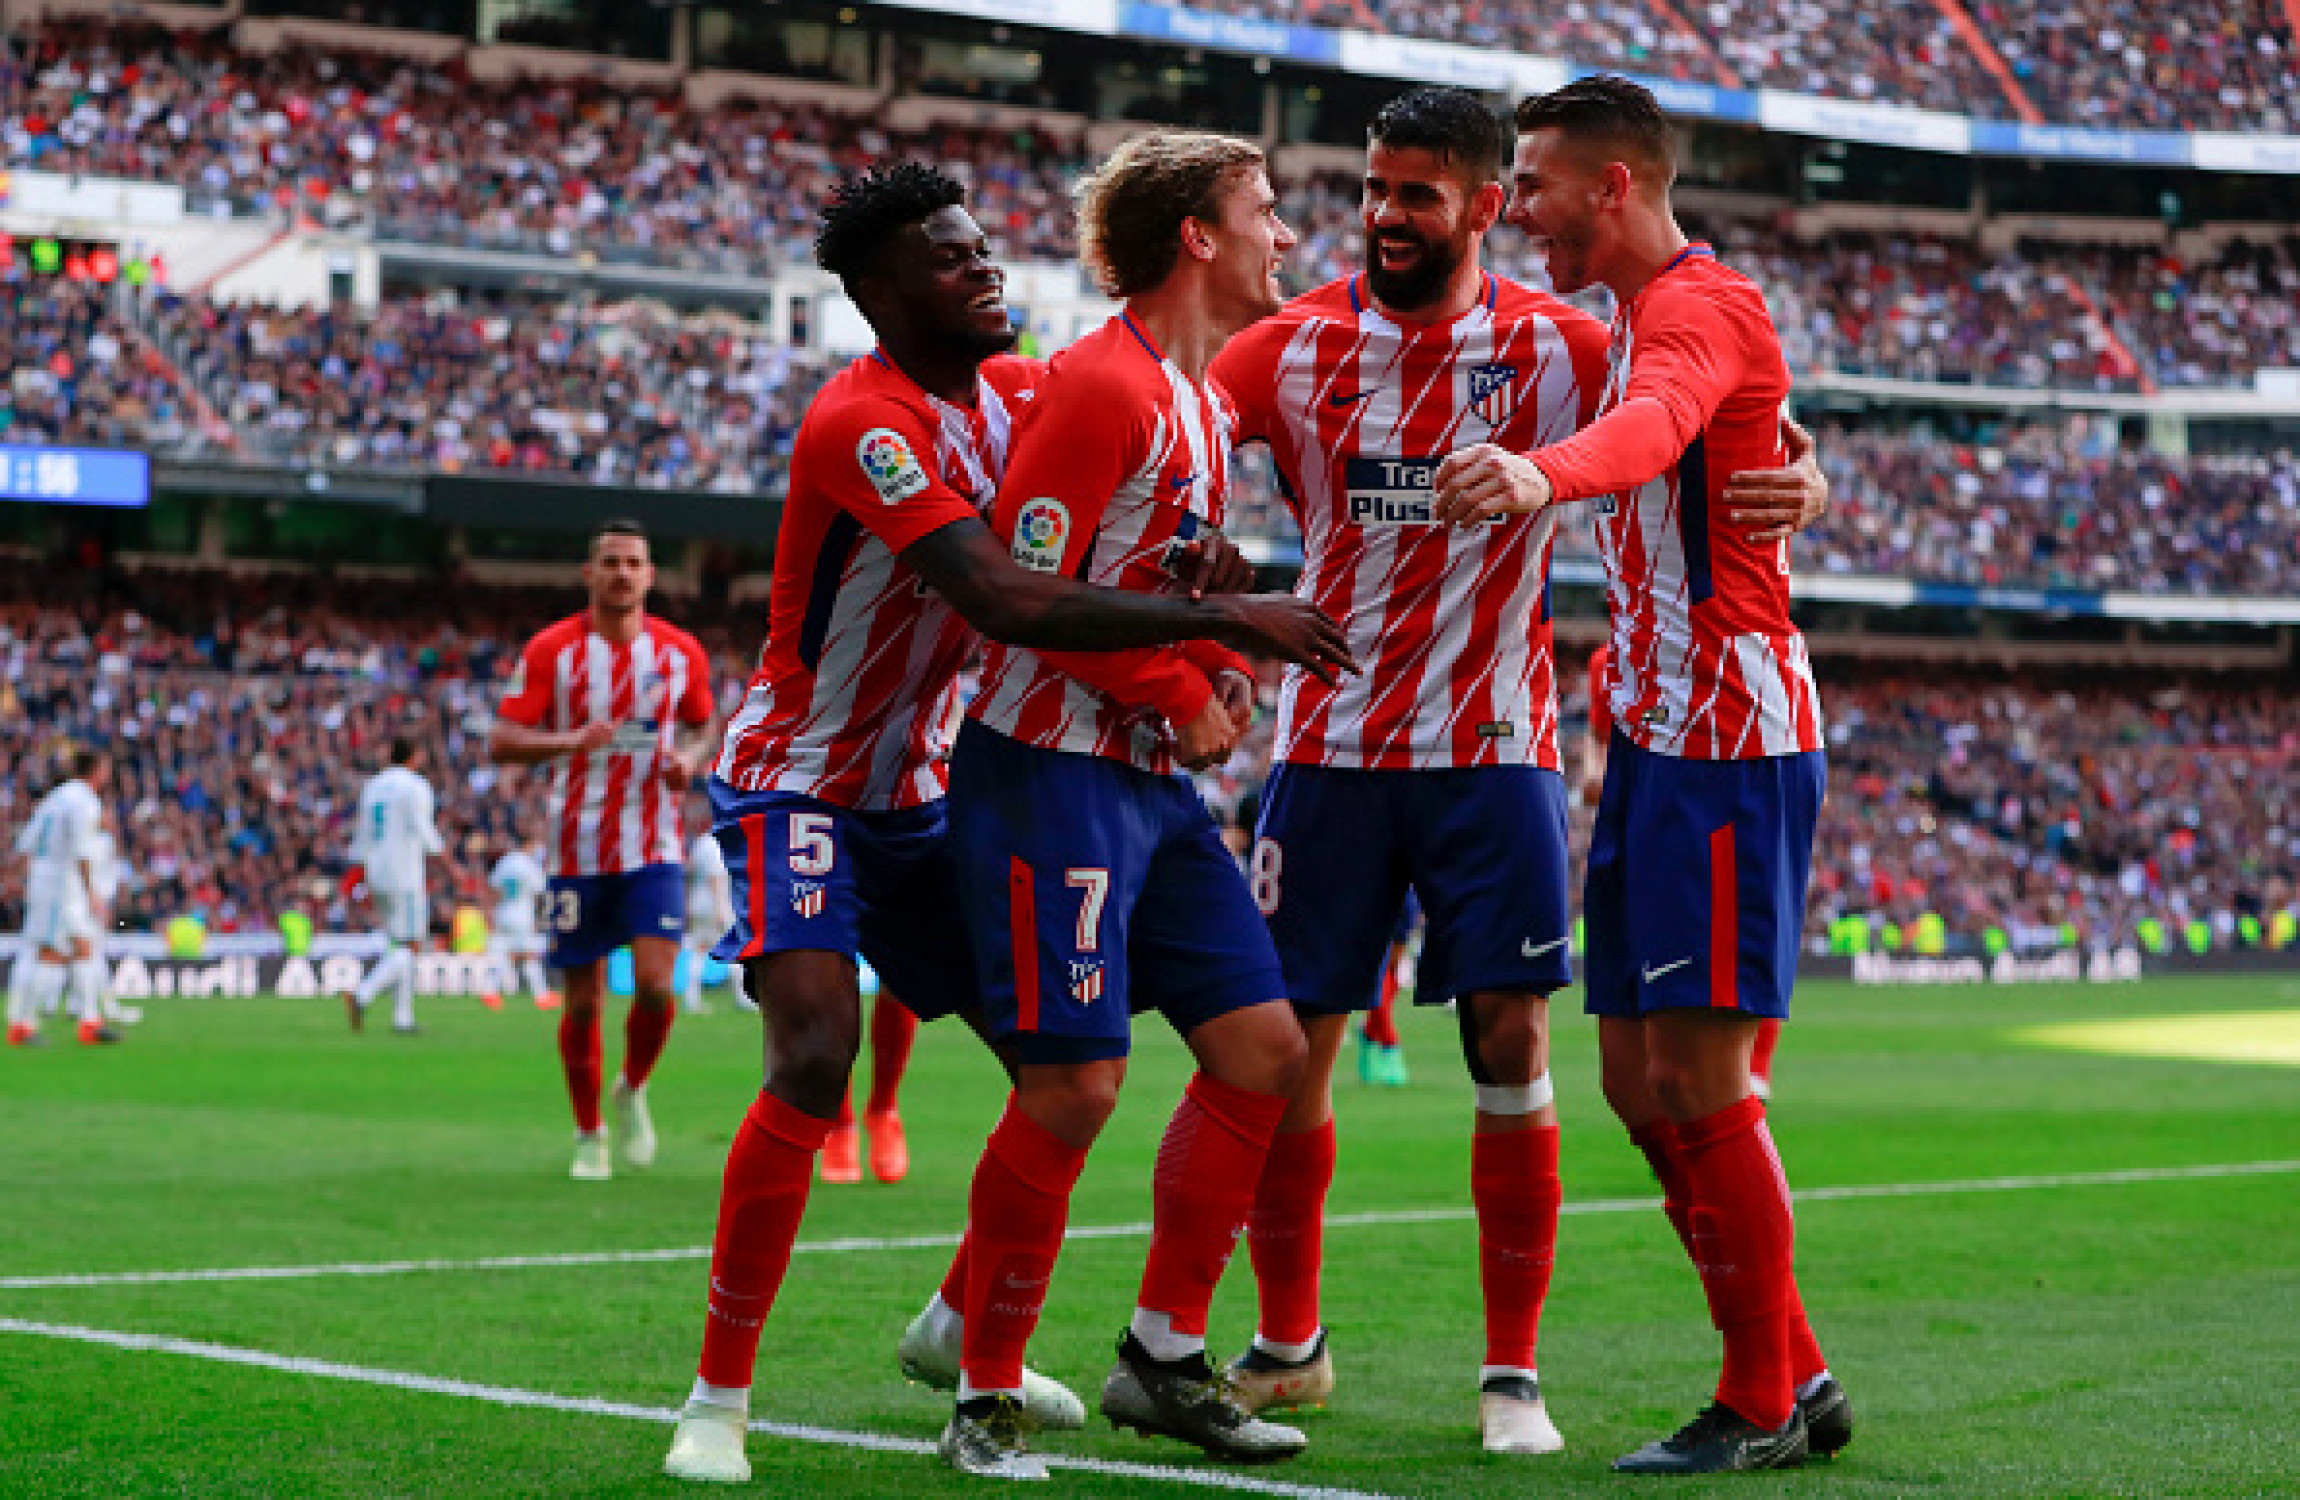 LaLiga: Real Madrid 1 Atletico Madrid 1 - Griezmann pegs back Ronaldo opener